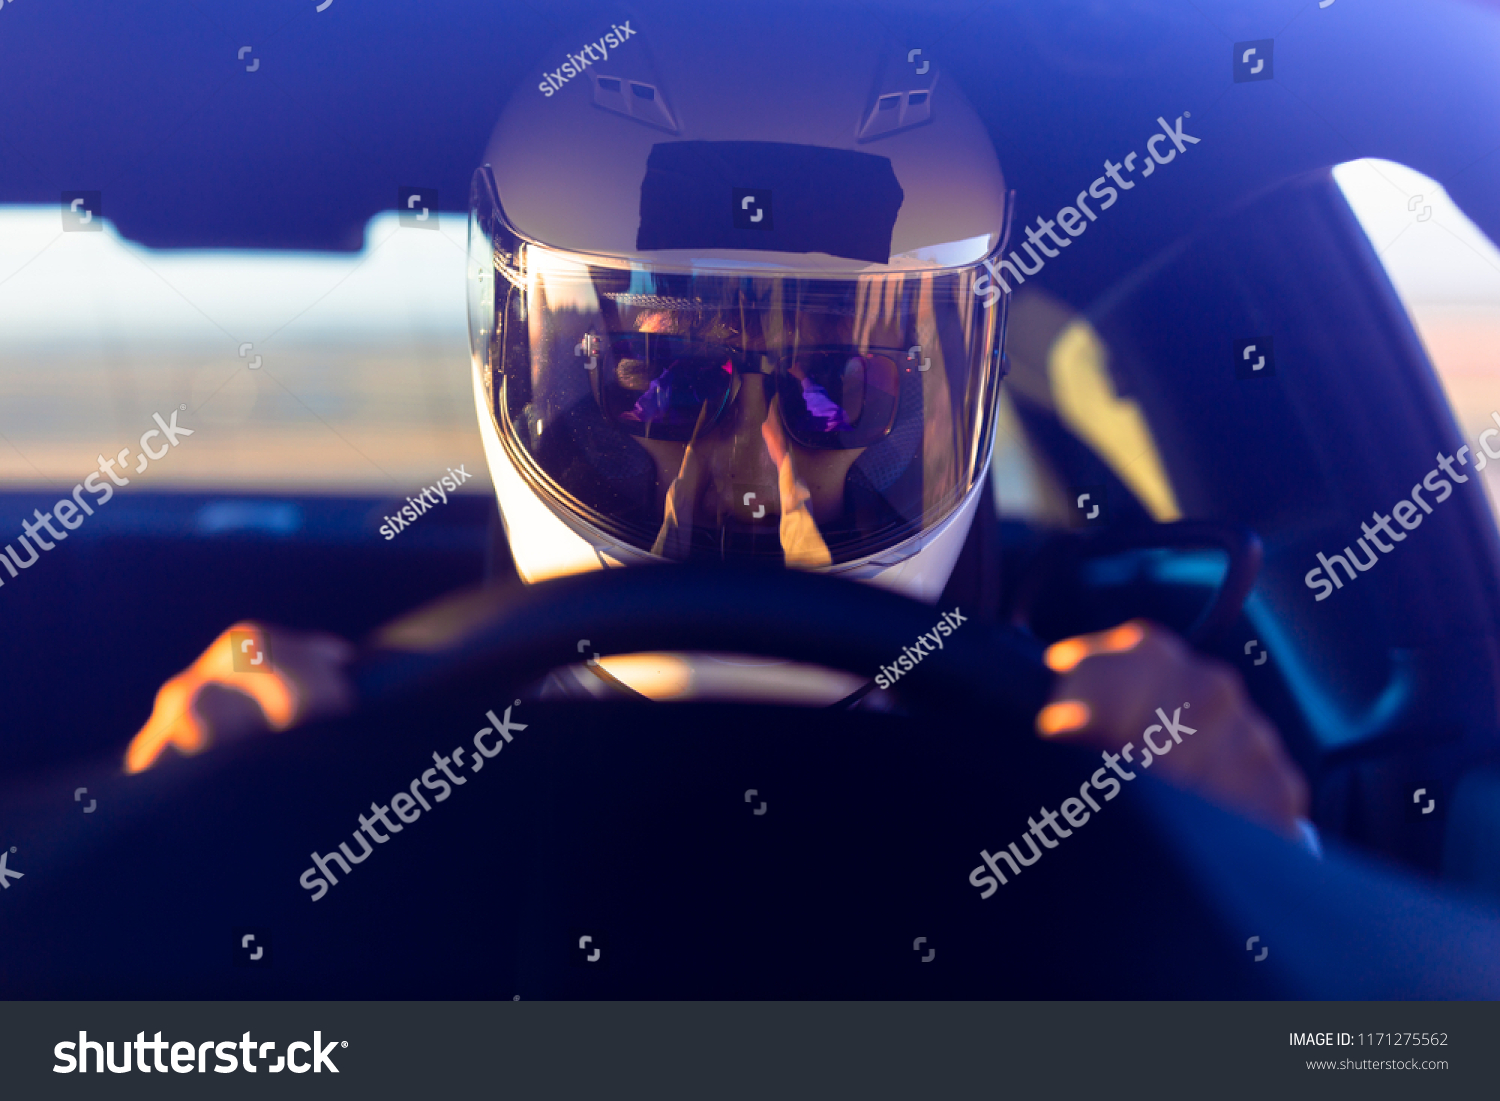 A Helmeted Race Car Driver At The Wheel #1171275562